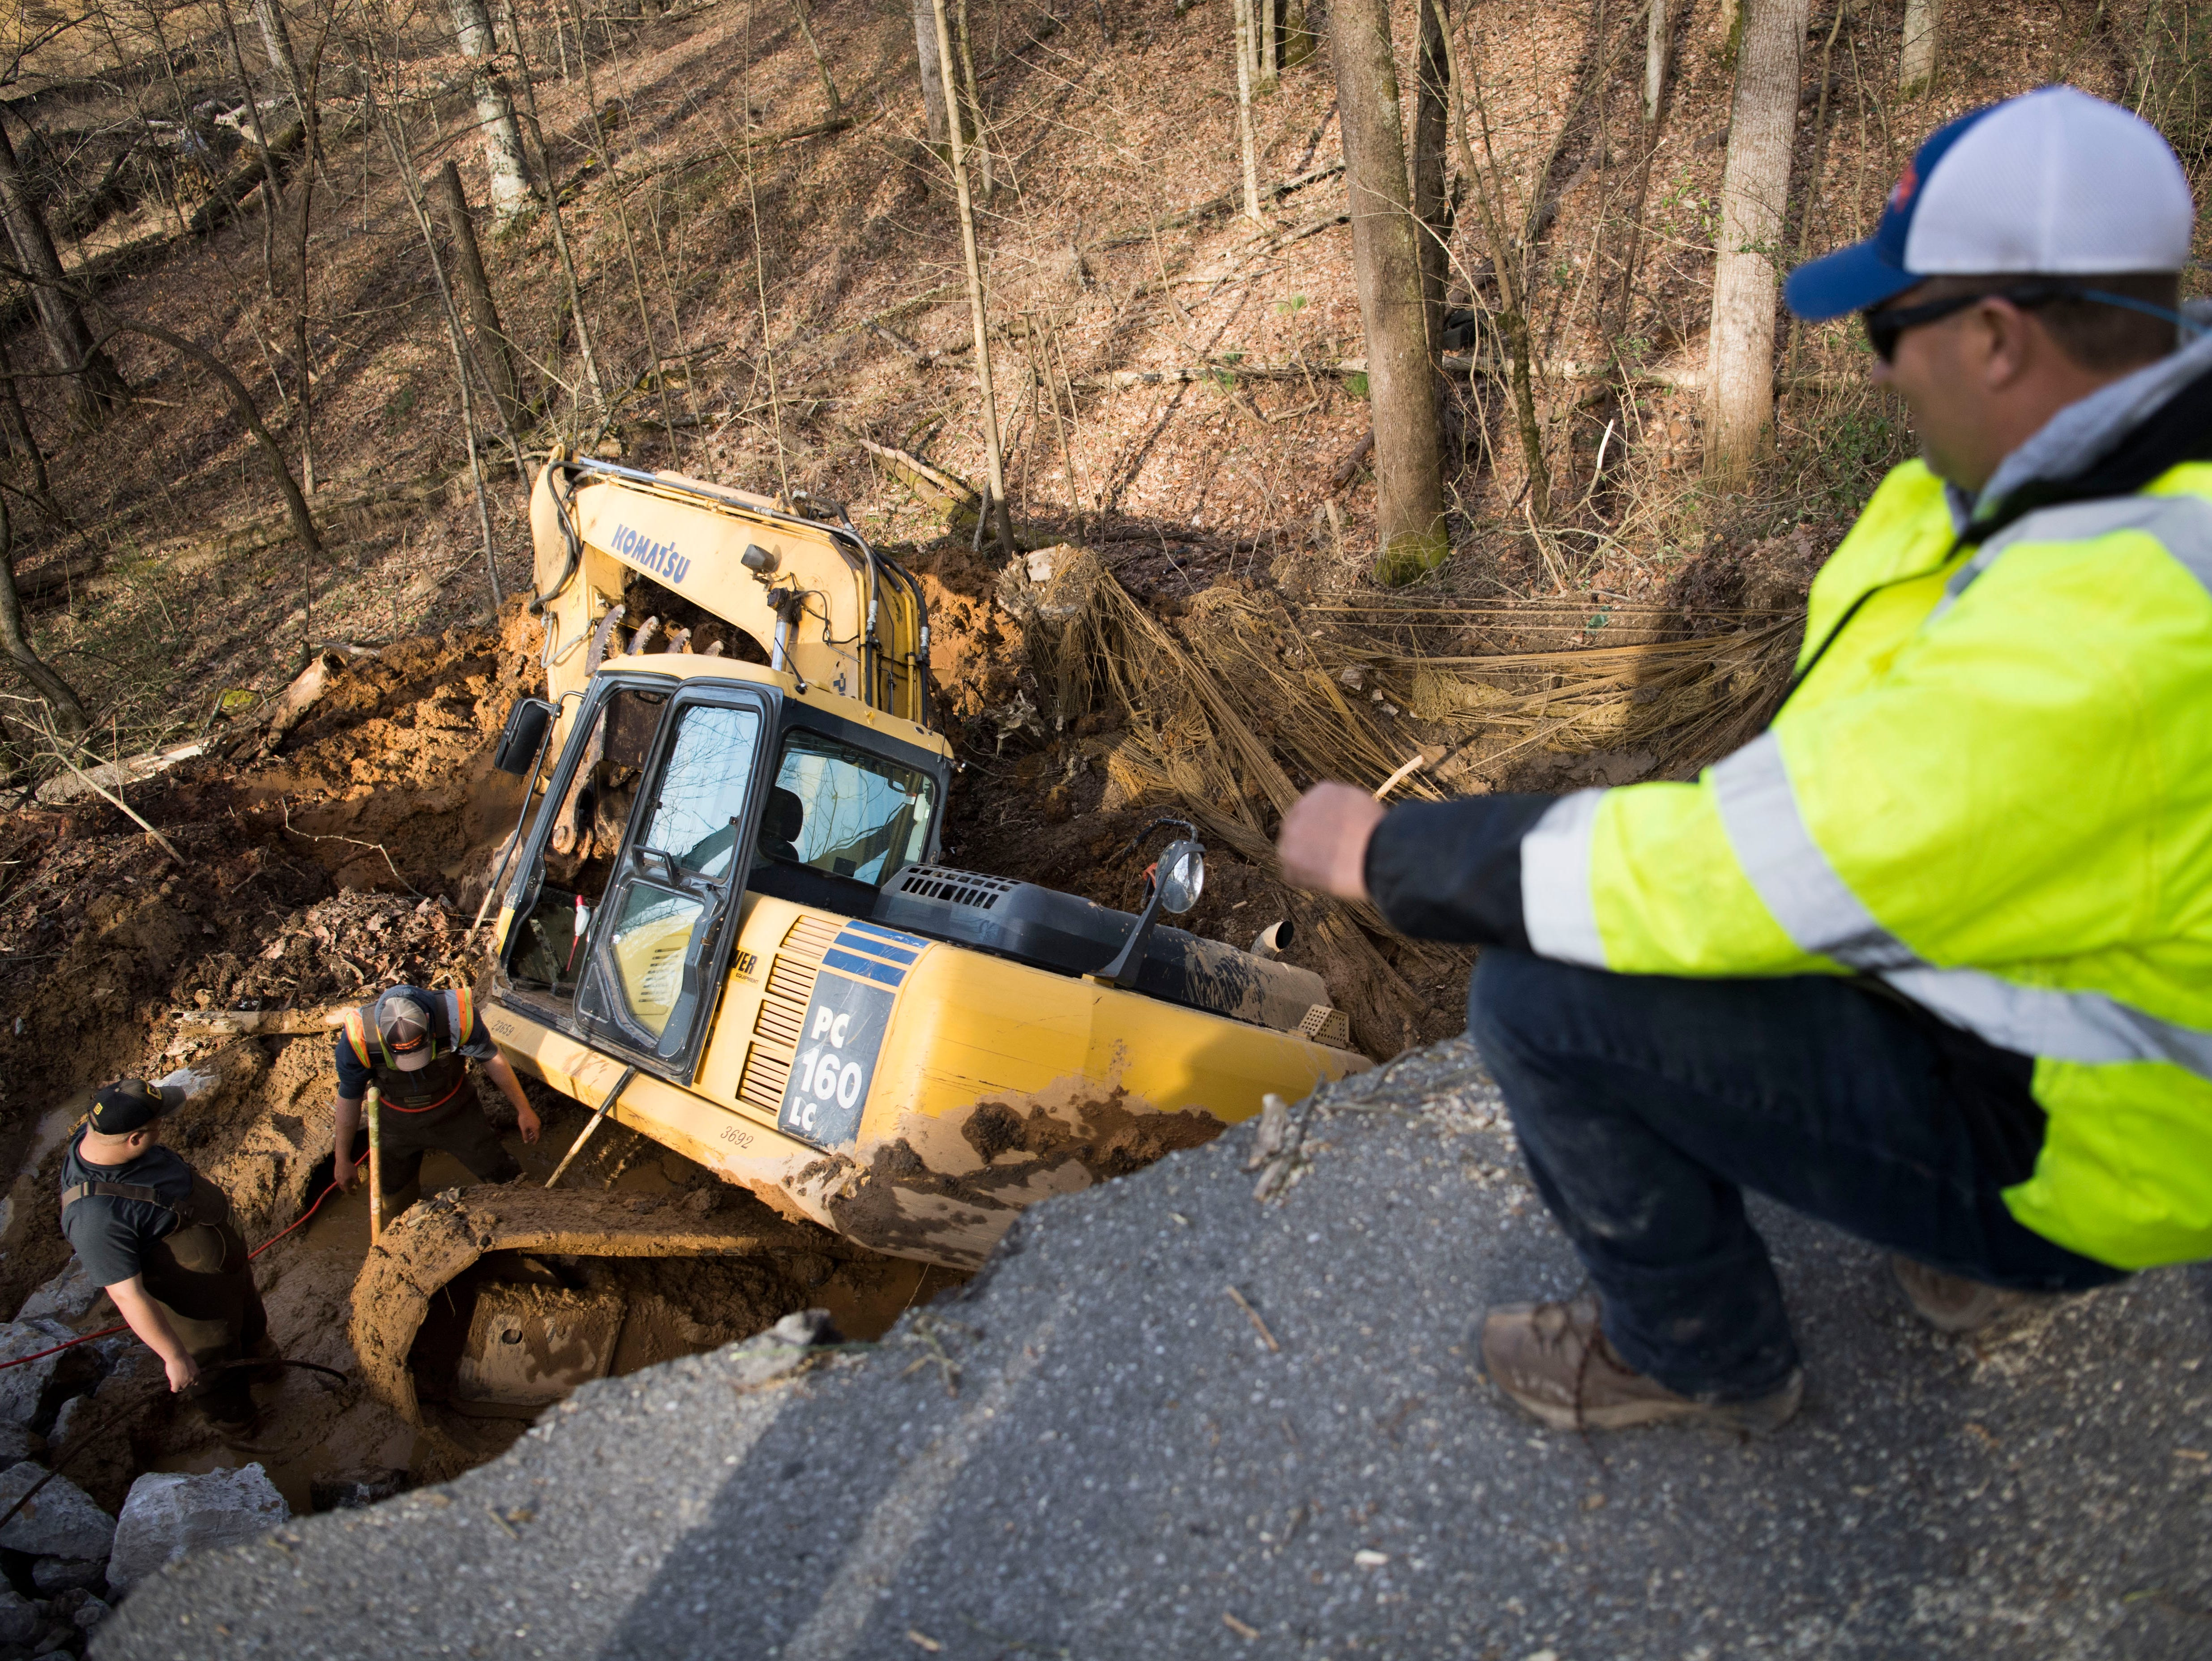 Knox County Highway Department employees work to free a backhoe which got stuck in the mud while attempting to repair Everett Road in West Knoxville Monday, Feb. 25, 2019. A combination of the weekend's rain and an underground stream, caused a portion of the road to break away.